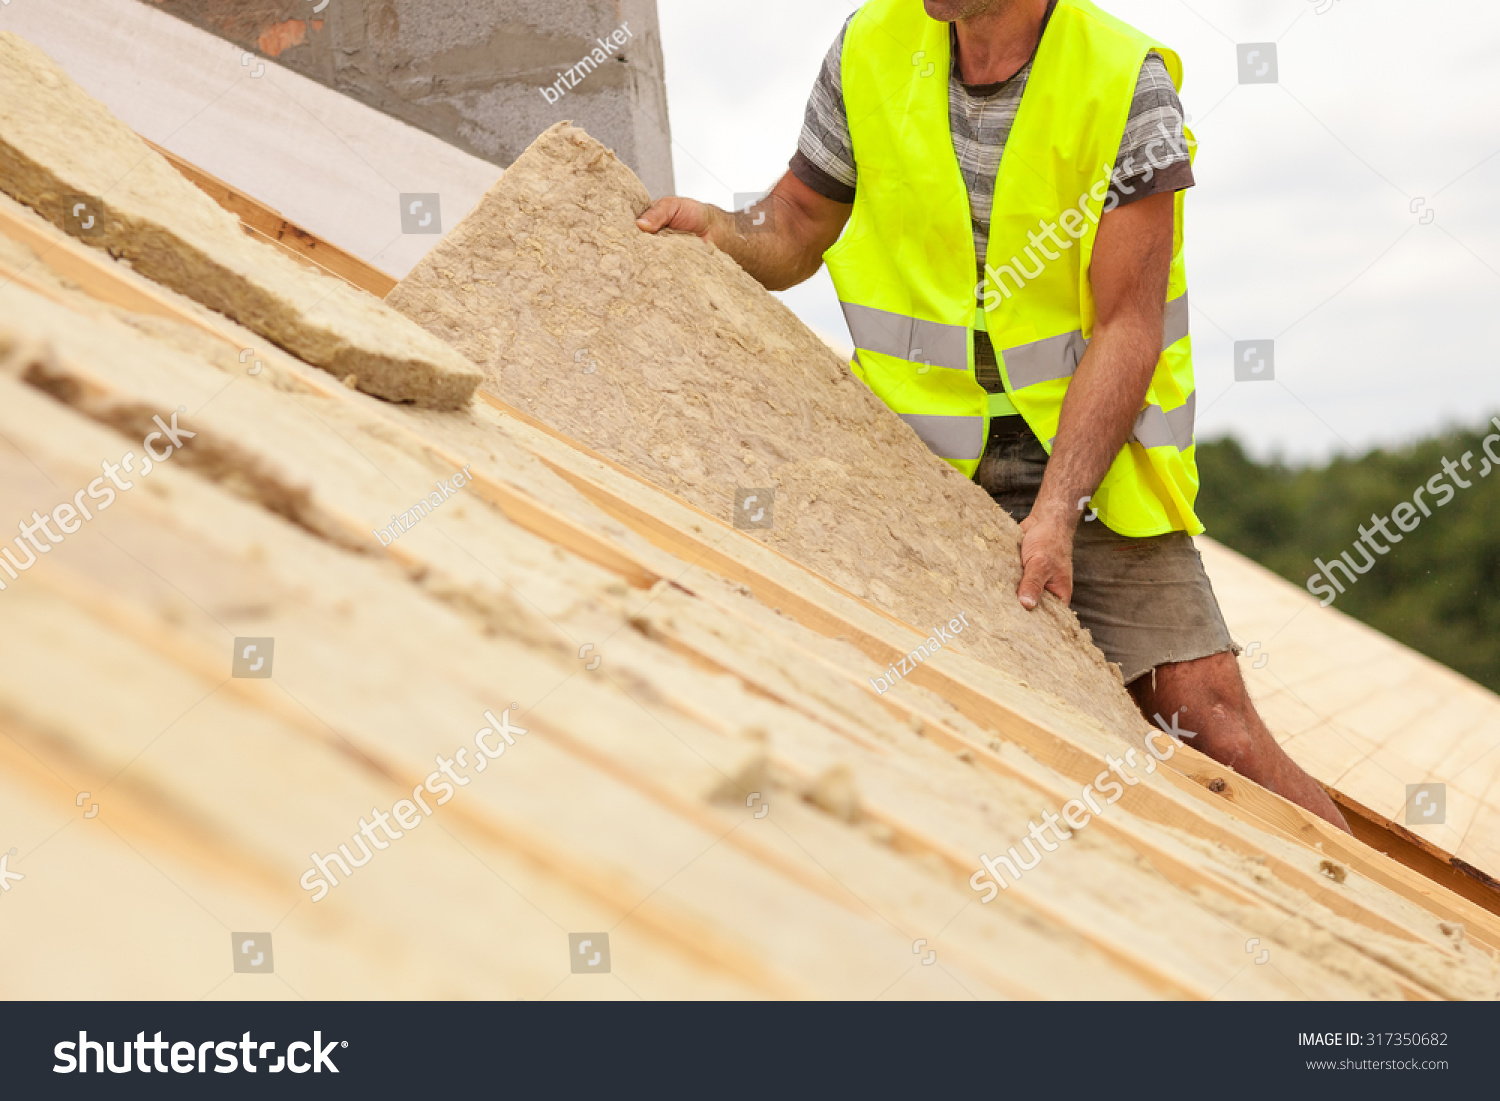 stock-photo-roofer-builder-worker-installing-roof-insulation-material-on-new-house-under-construction-317350682